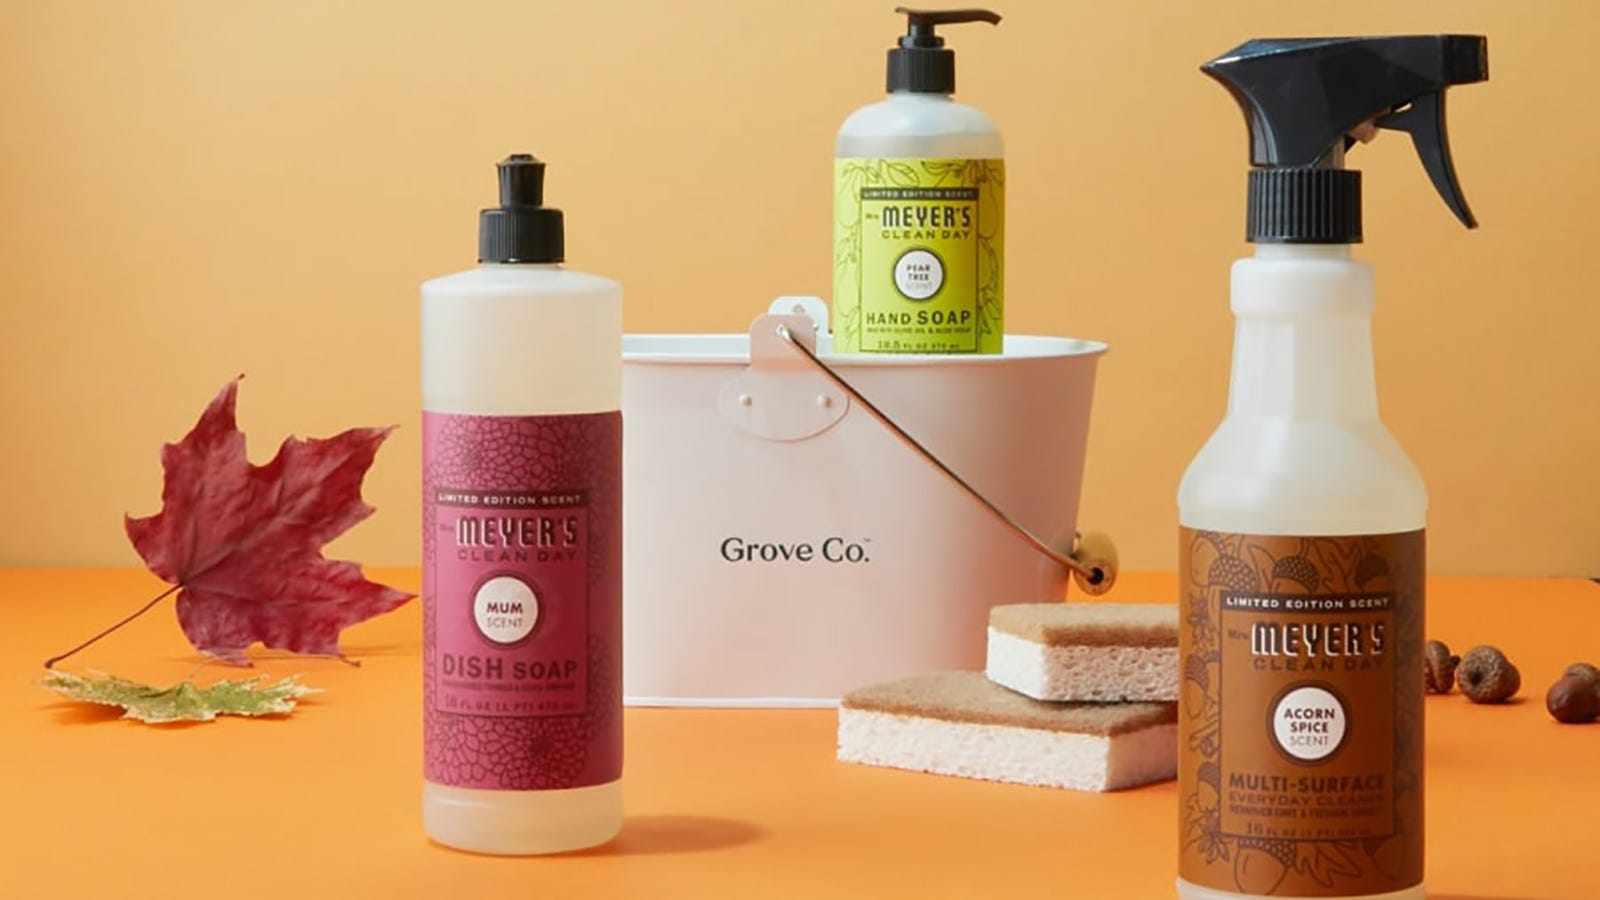 Score a Mrs. Meyer's gift set worth $50 with your Grove Collaborative purchase